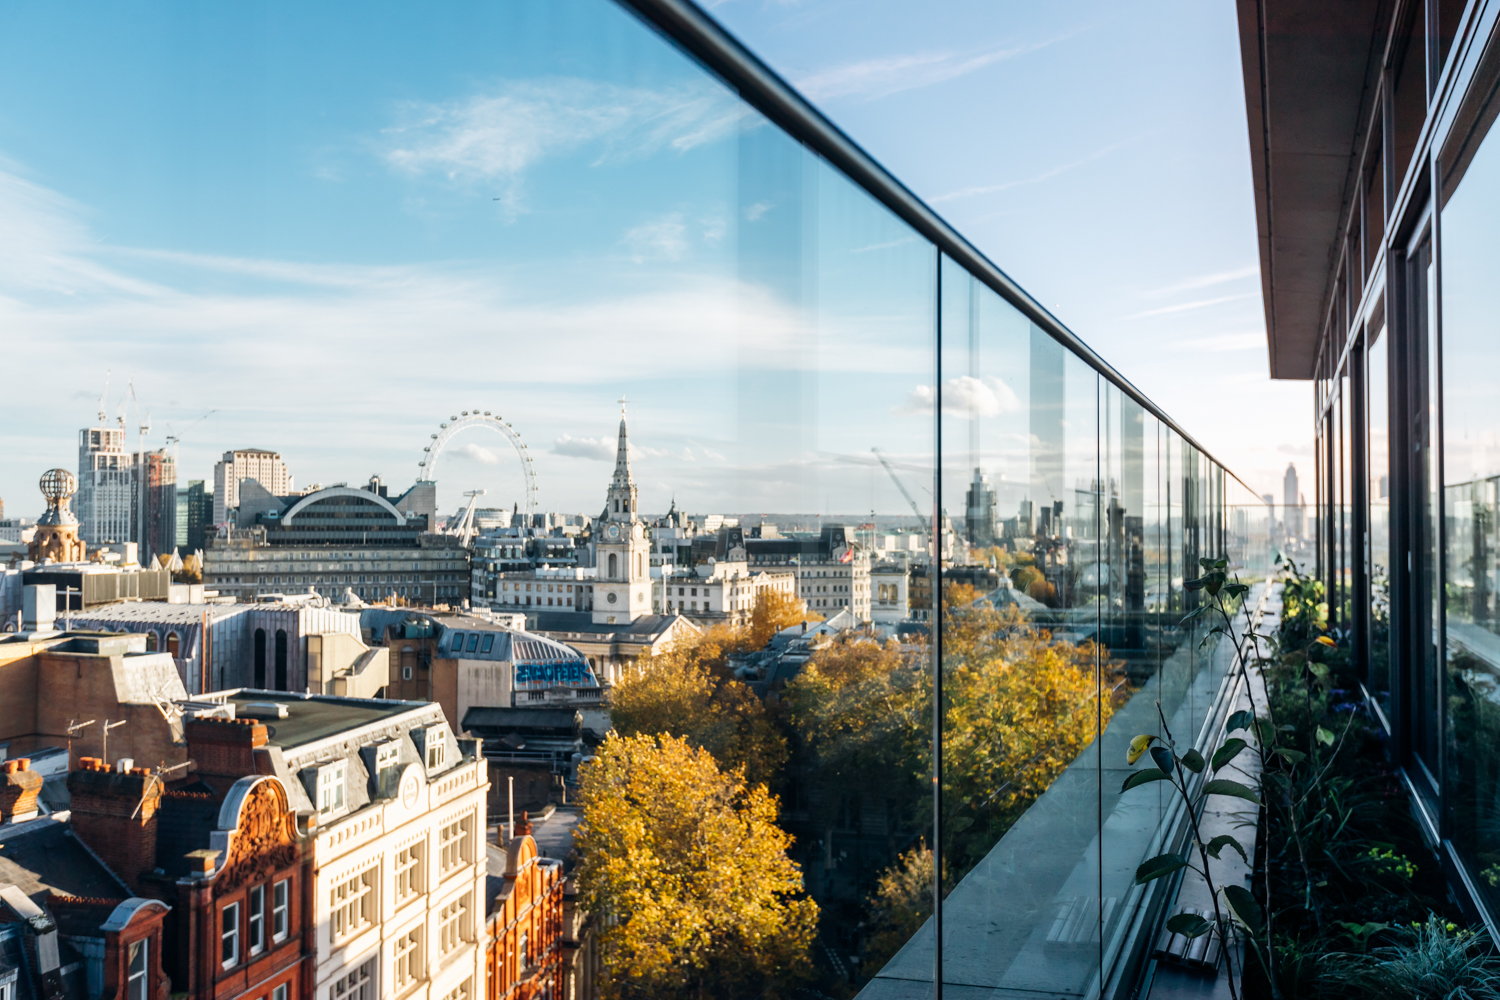 Amazing sunshine views - Sit back and relax in our private dining room, specially curated by John Frieda, and marvel at the views across London's rooftops.